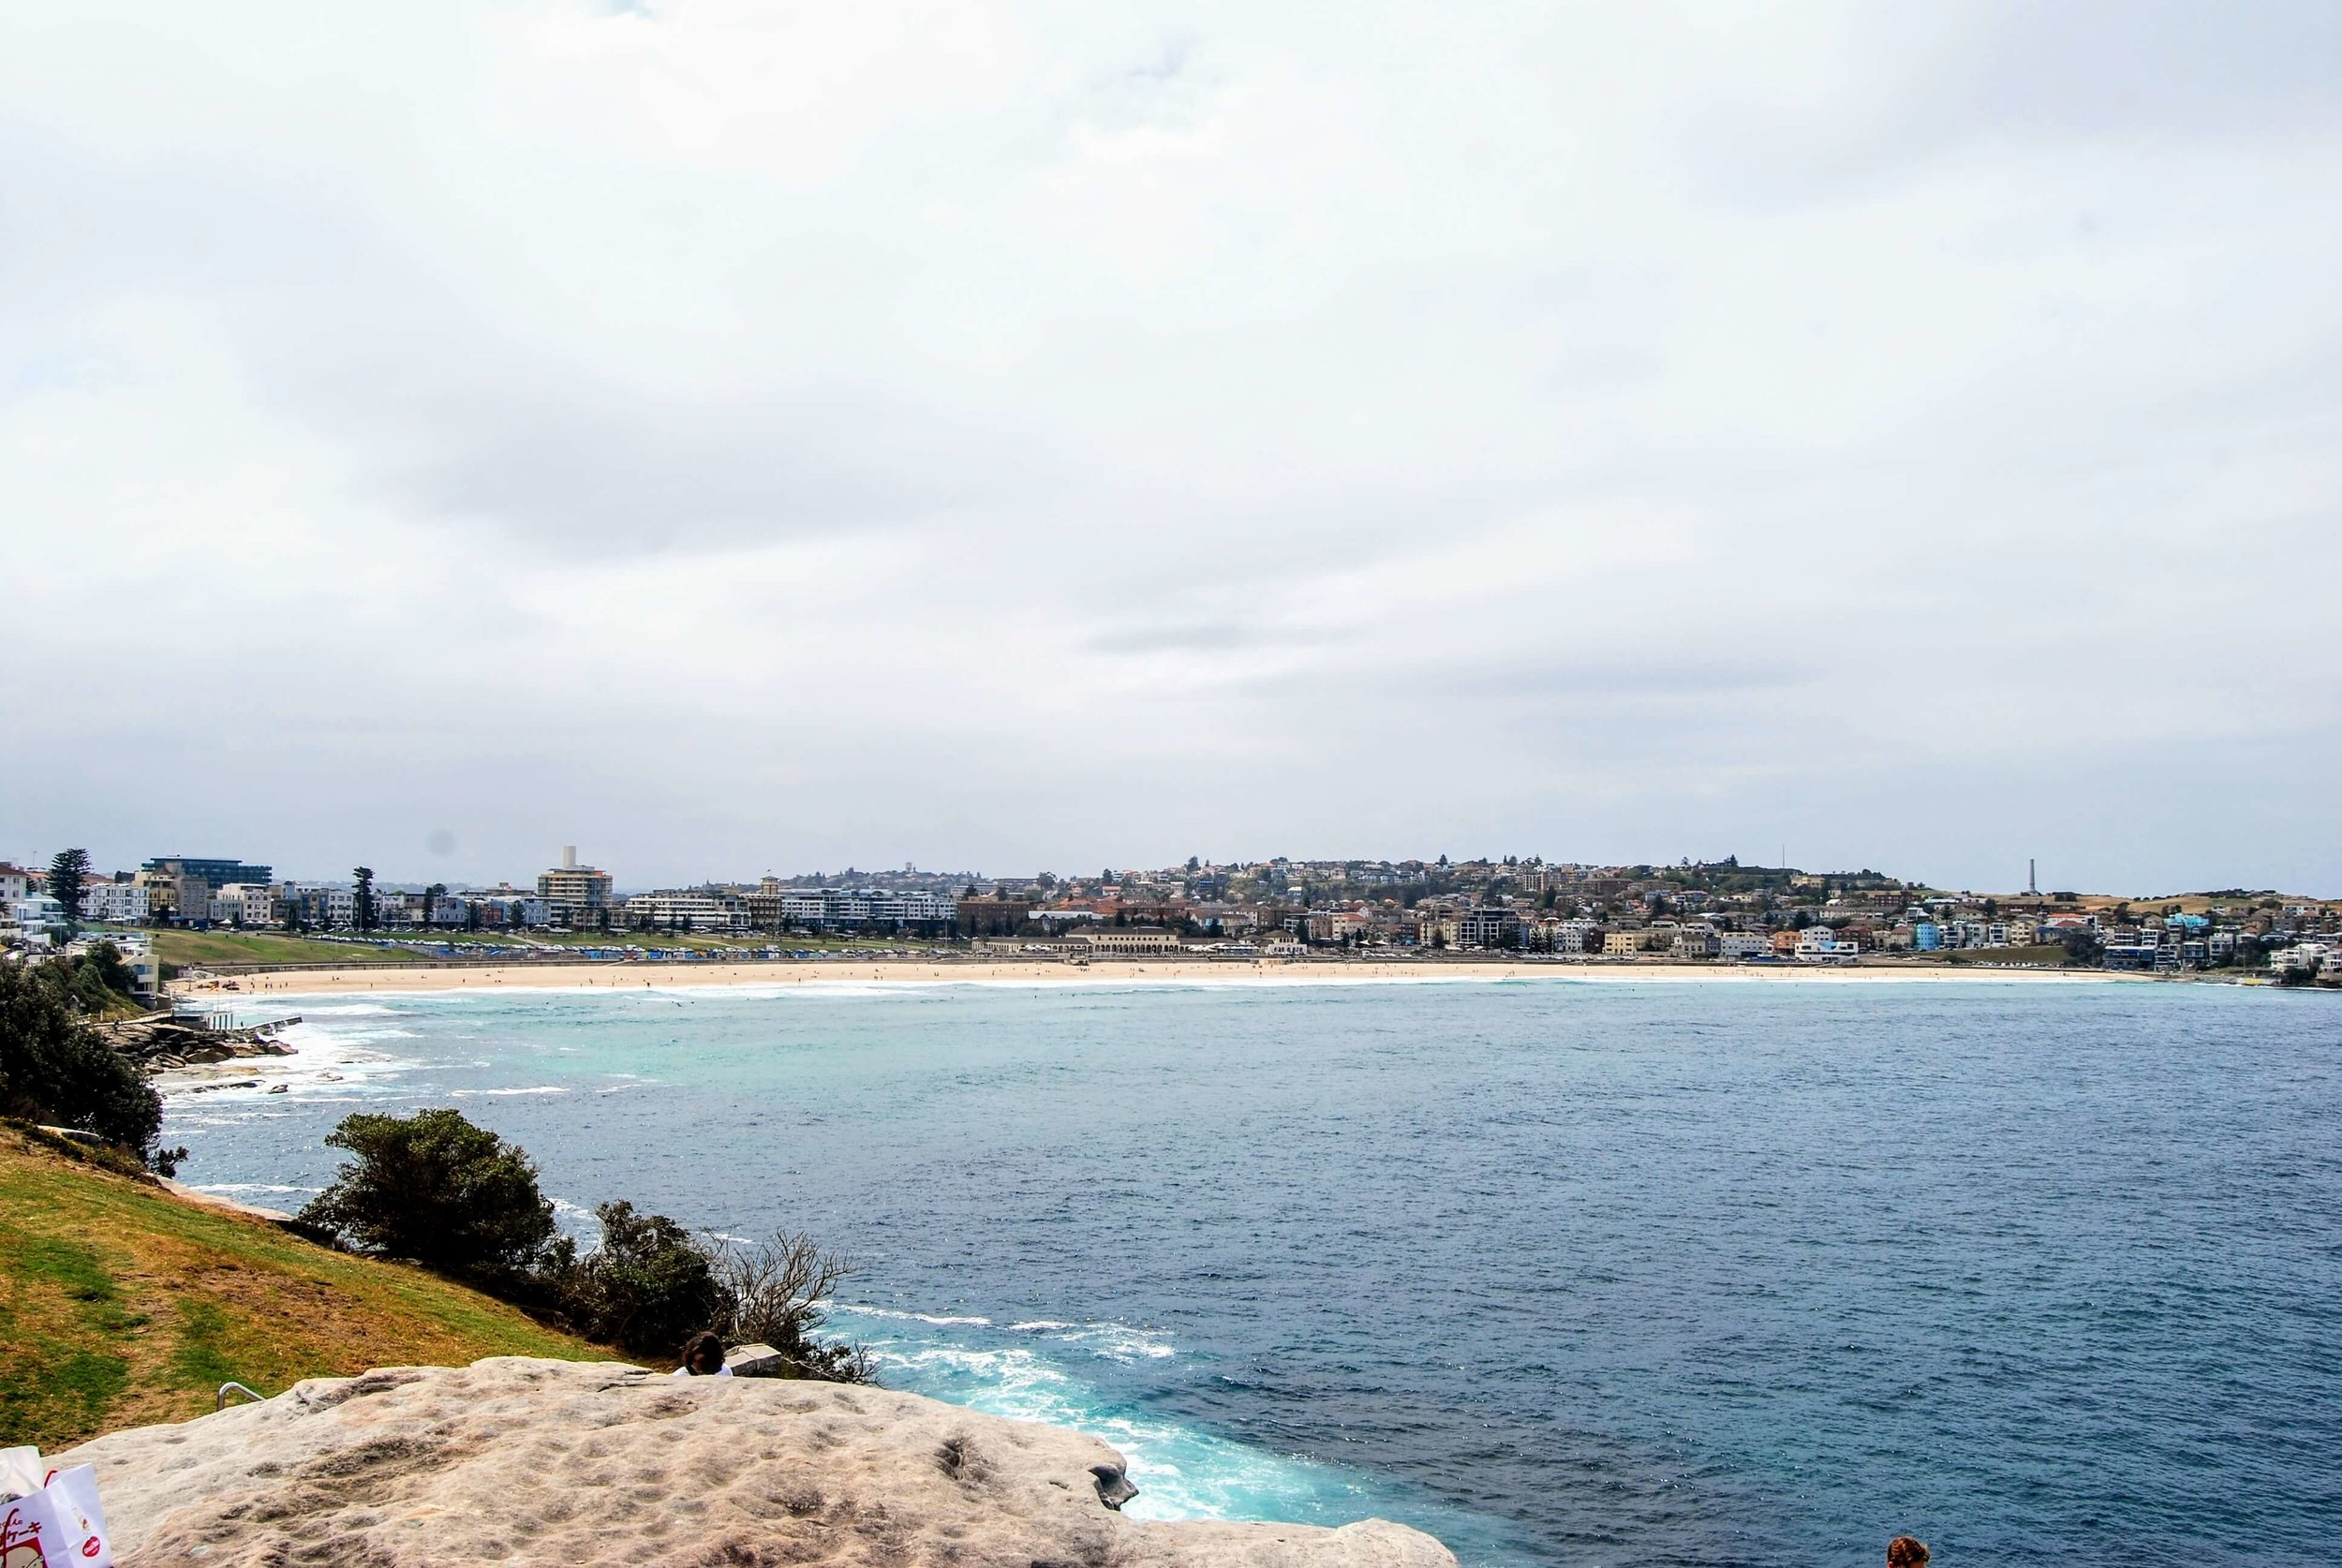 Bondi Beach as seen from Mackenzies Point